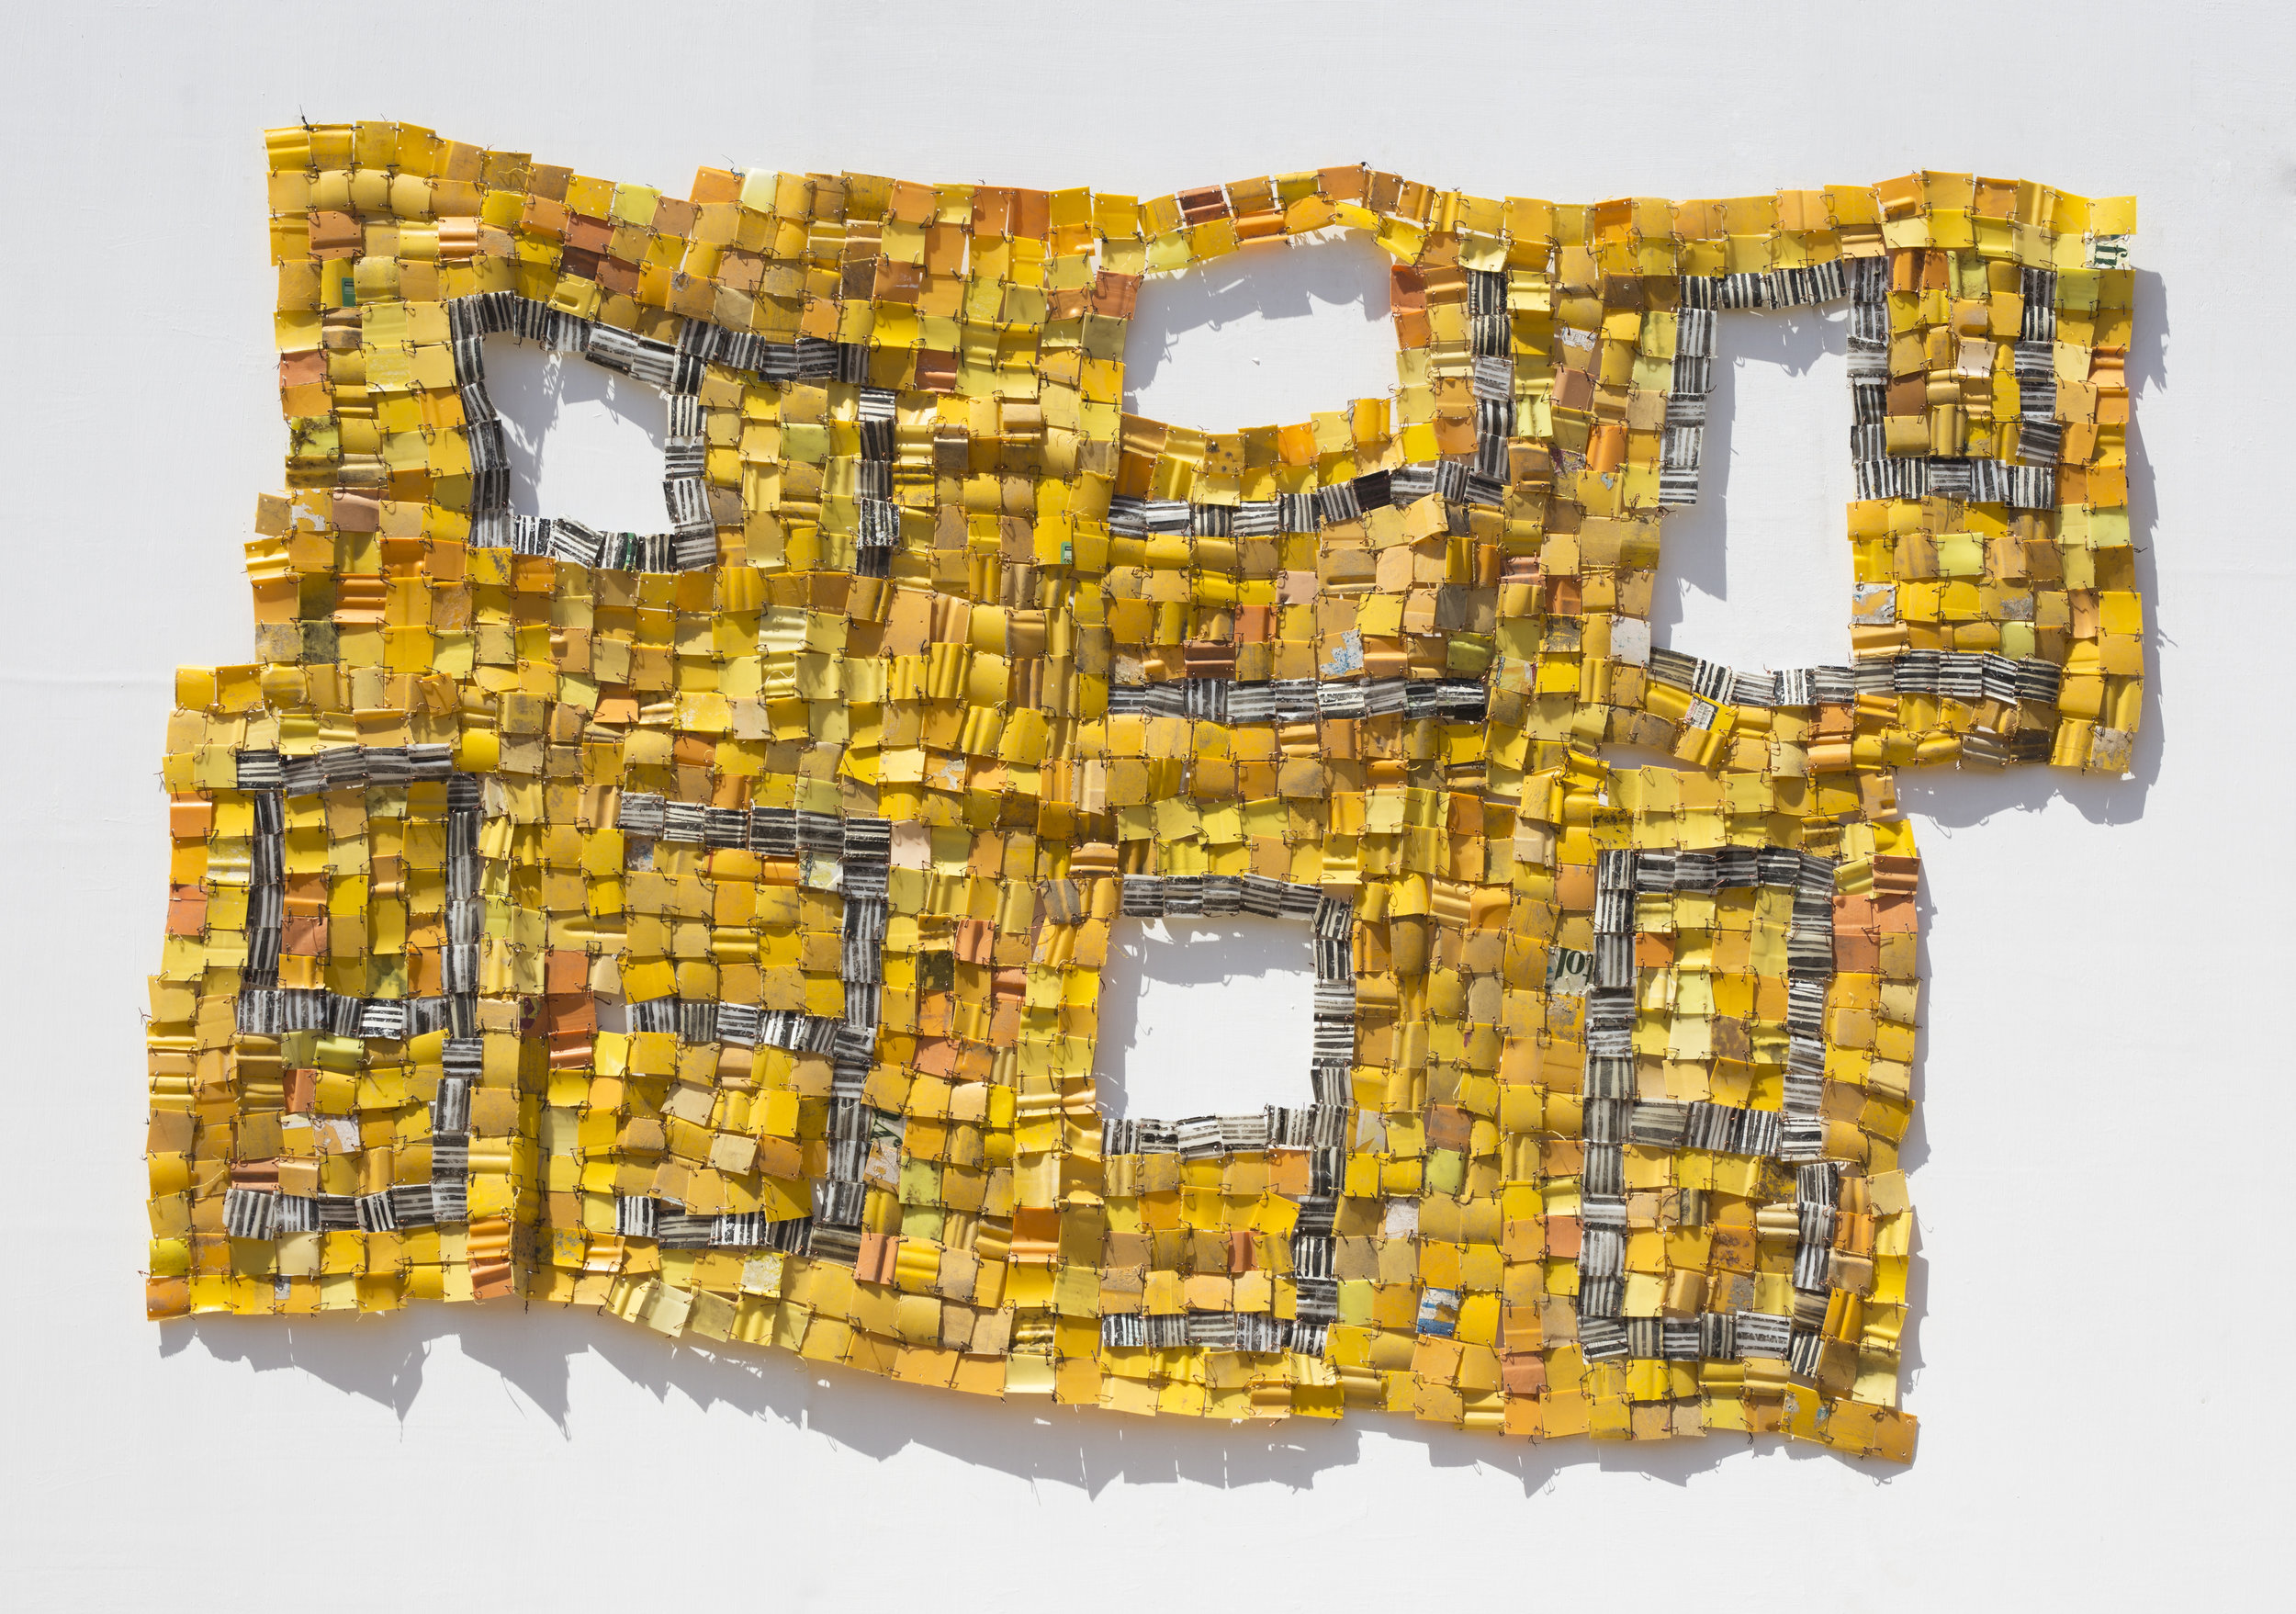 """SERGE ATTUKWEI CLOTTEY. """"NOTHING ELSE MATTERS"""" (2018). PLASTICS, WIRES AND OIL PAINT. 53 X 88 IN. PHOTO: NII ODZENMA."""